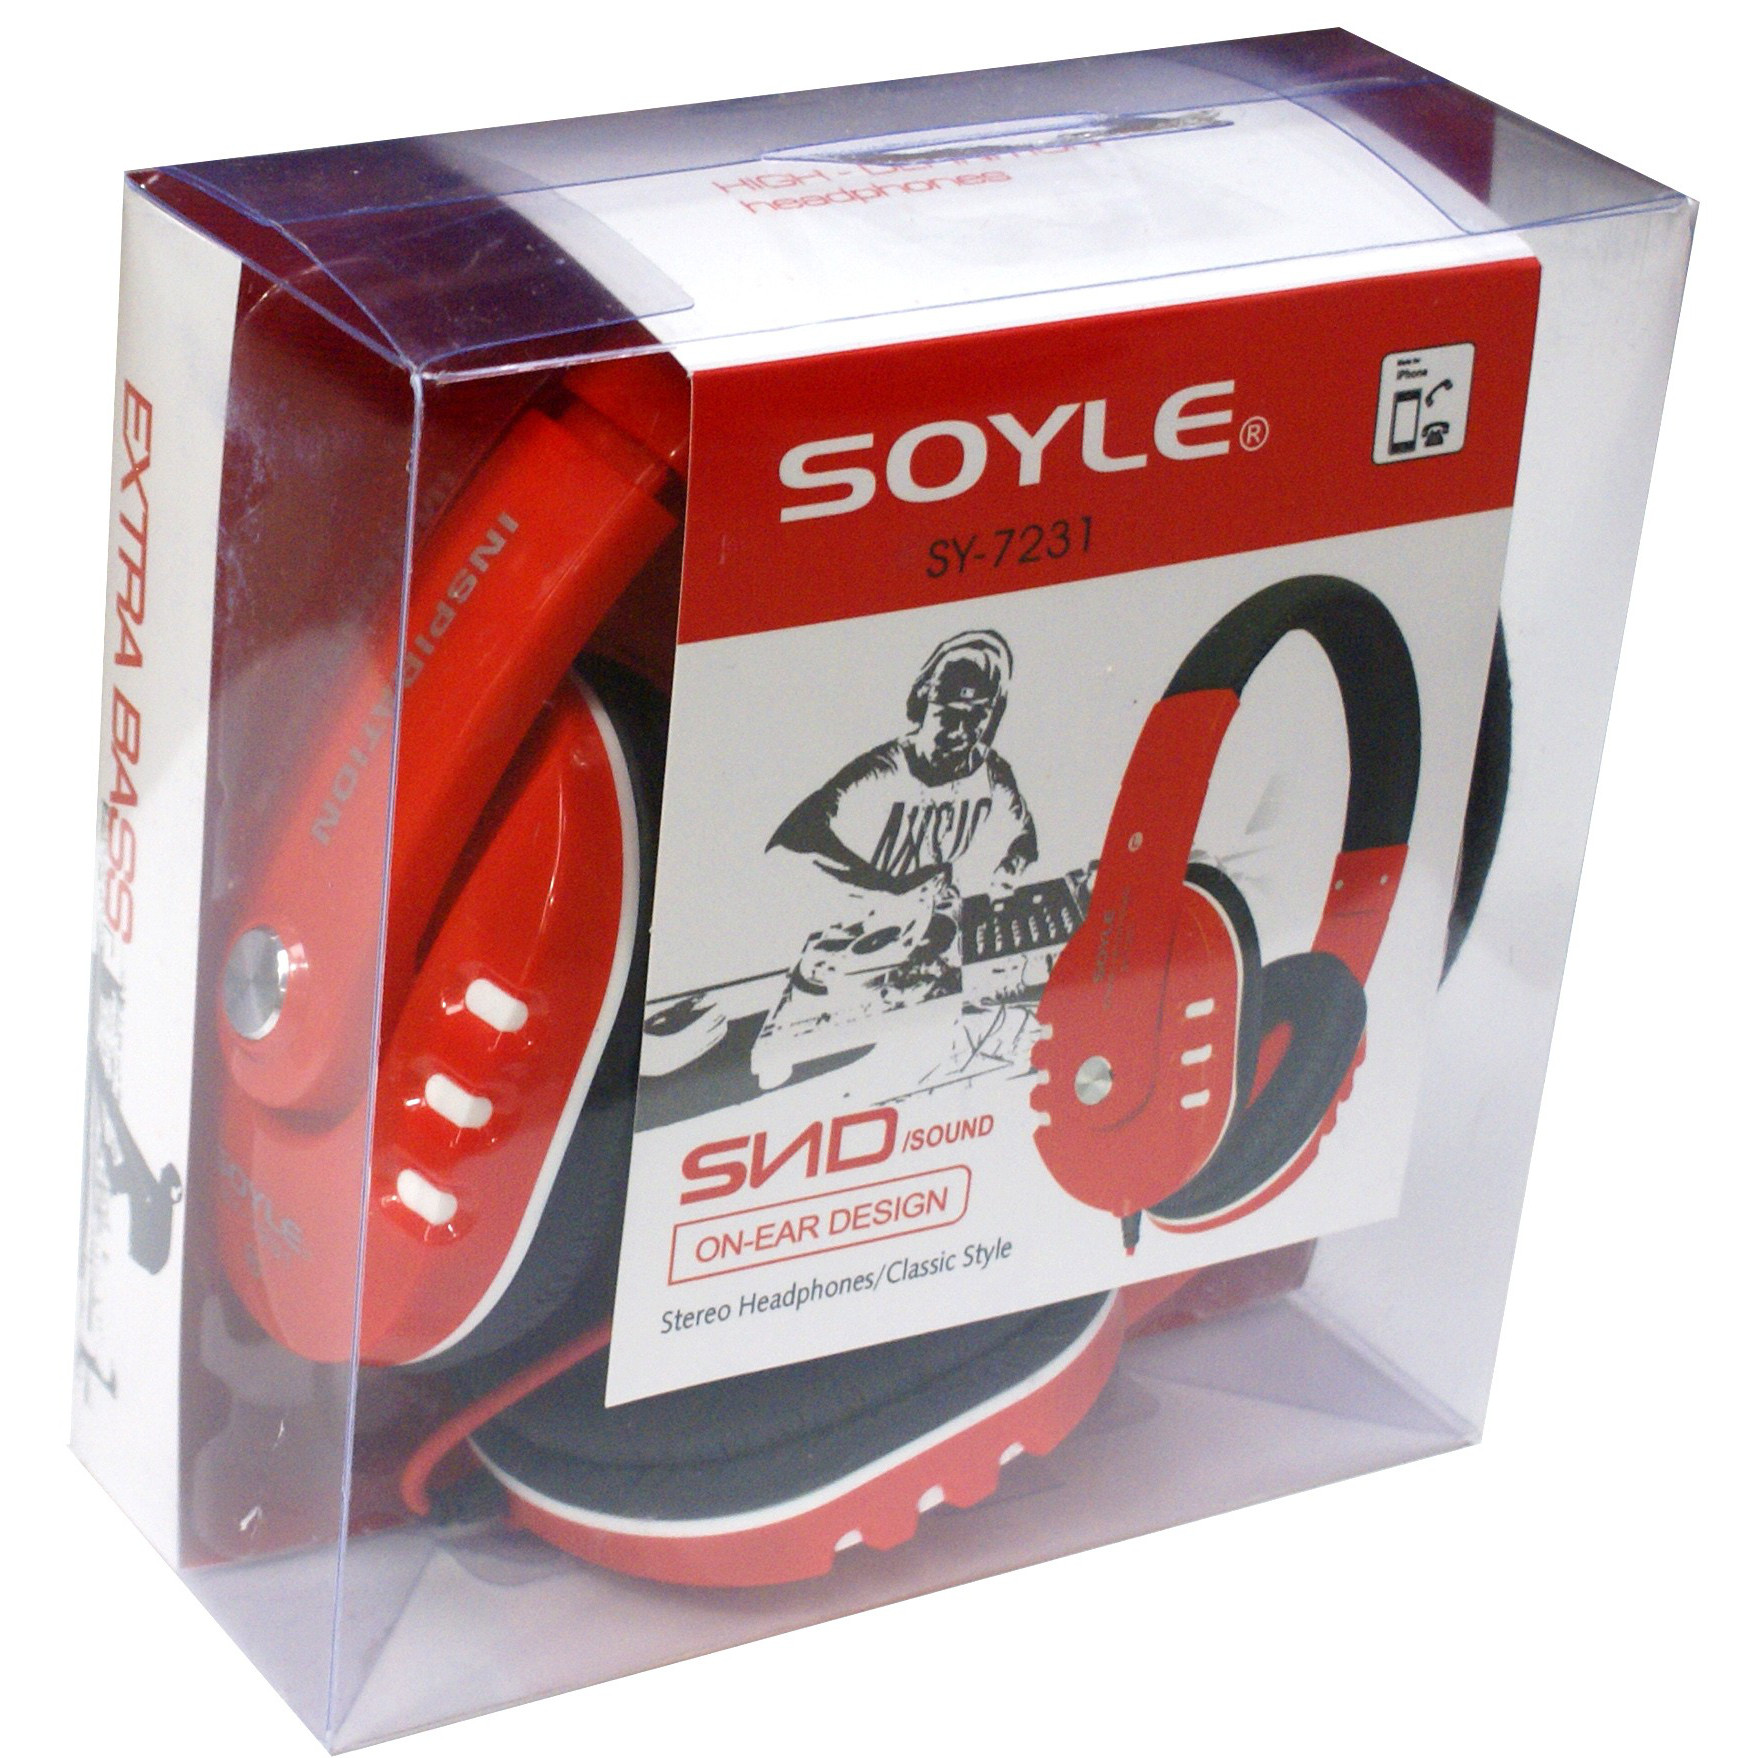 Soyle SY-7231 Noise Isolating Extra Bass Headphones In Red or White